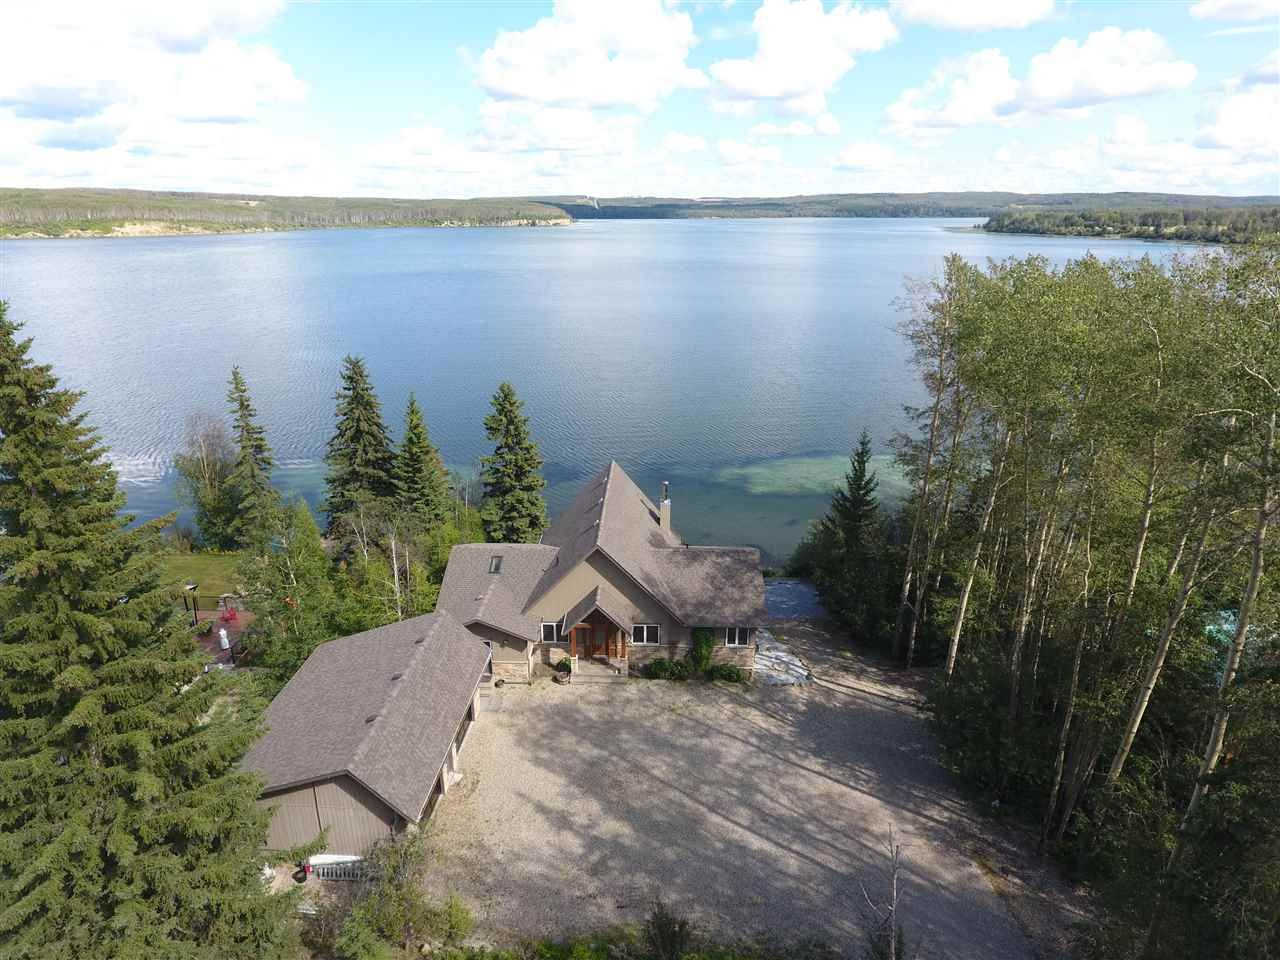 Main Photo: 13793 GOLF COURSE Road: Charlie Lake House for sale (Fort St. John (Zone 60))  : MLS®# R2488675